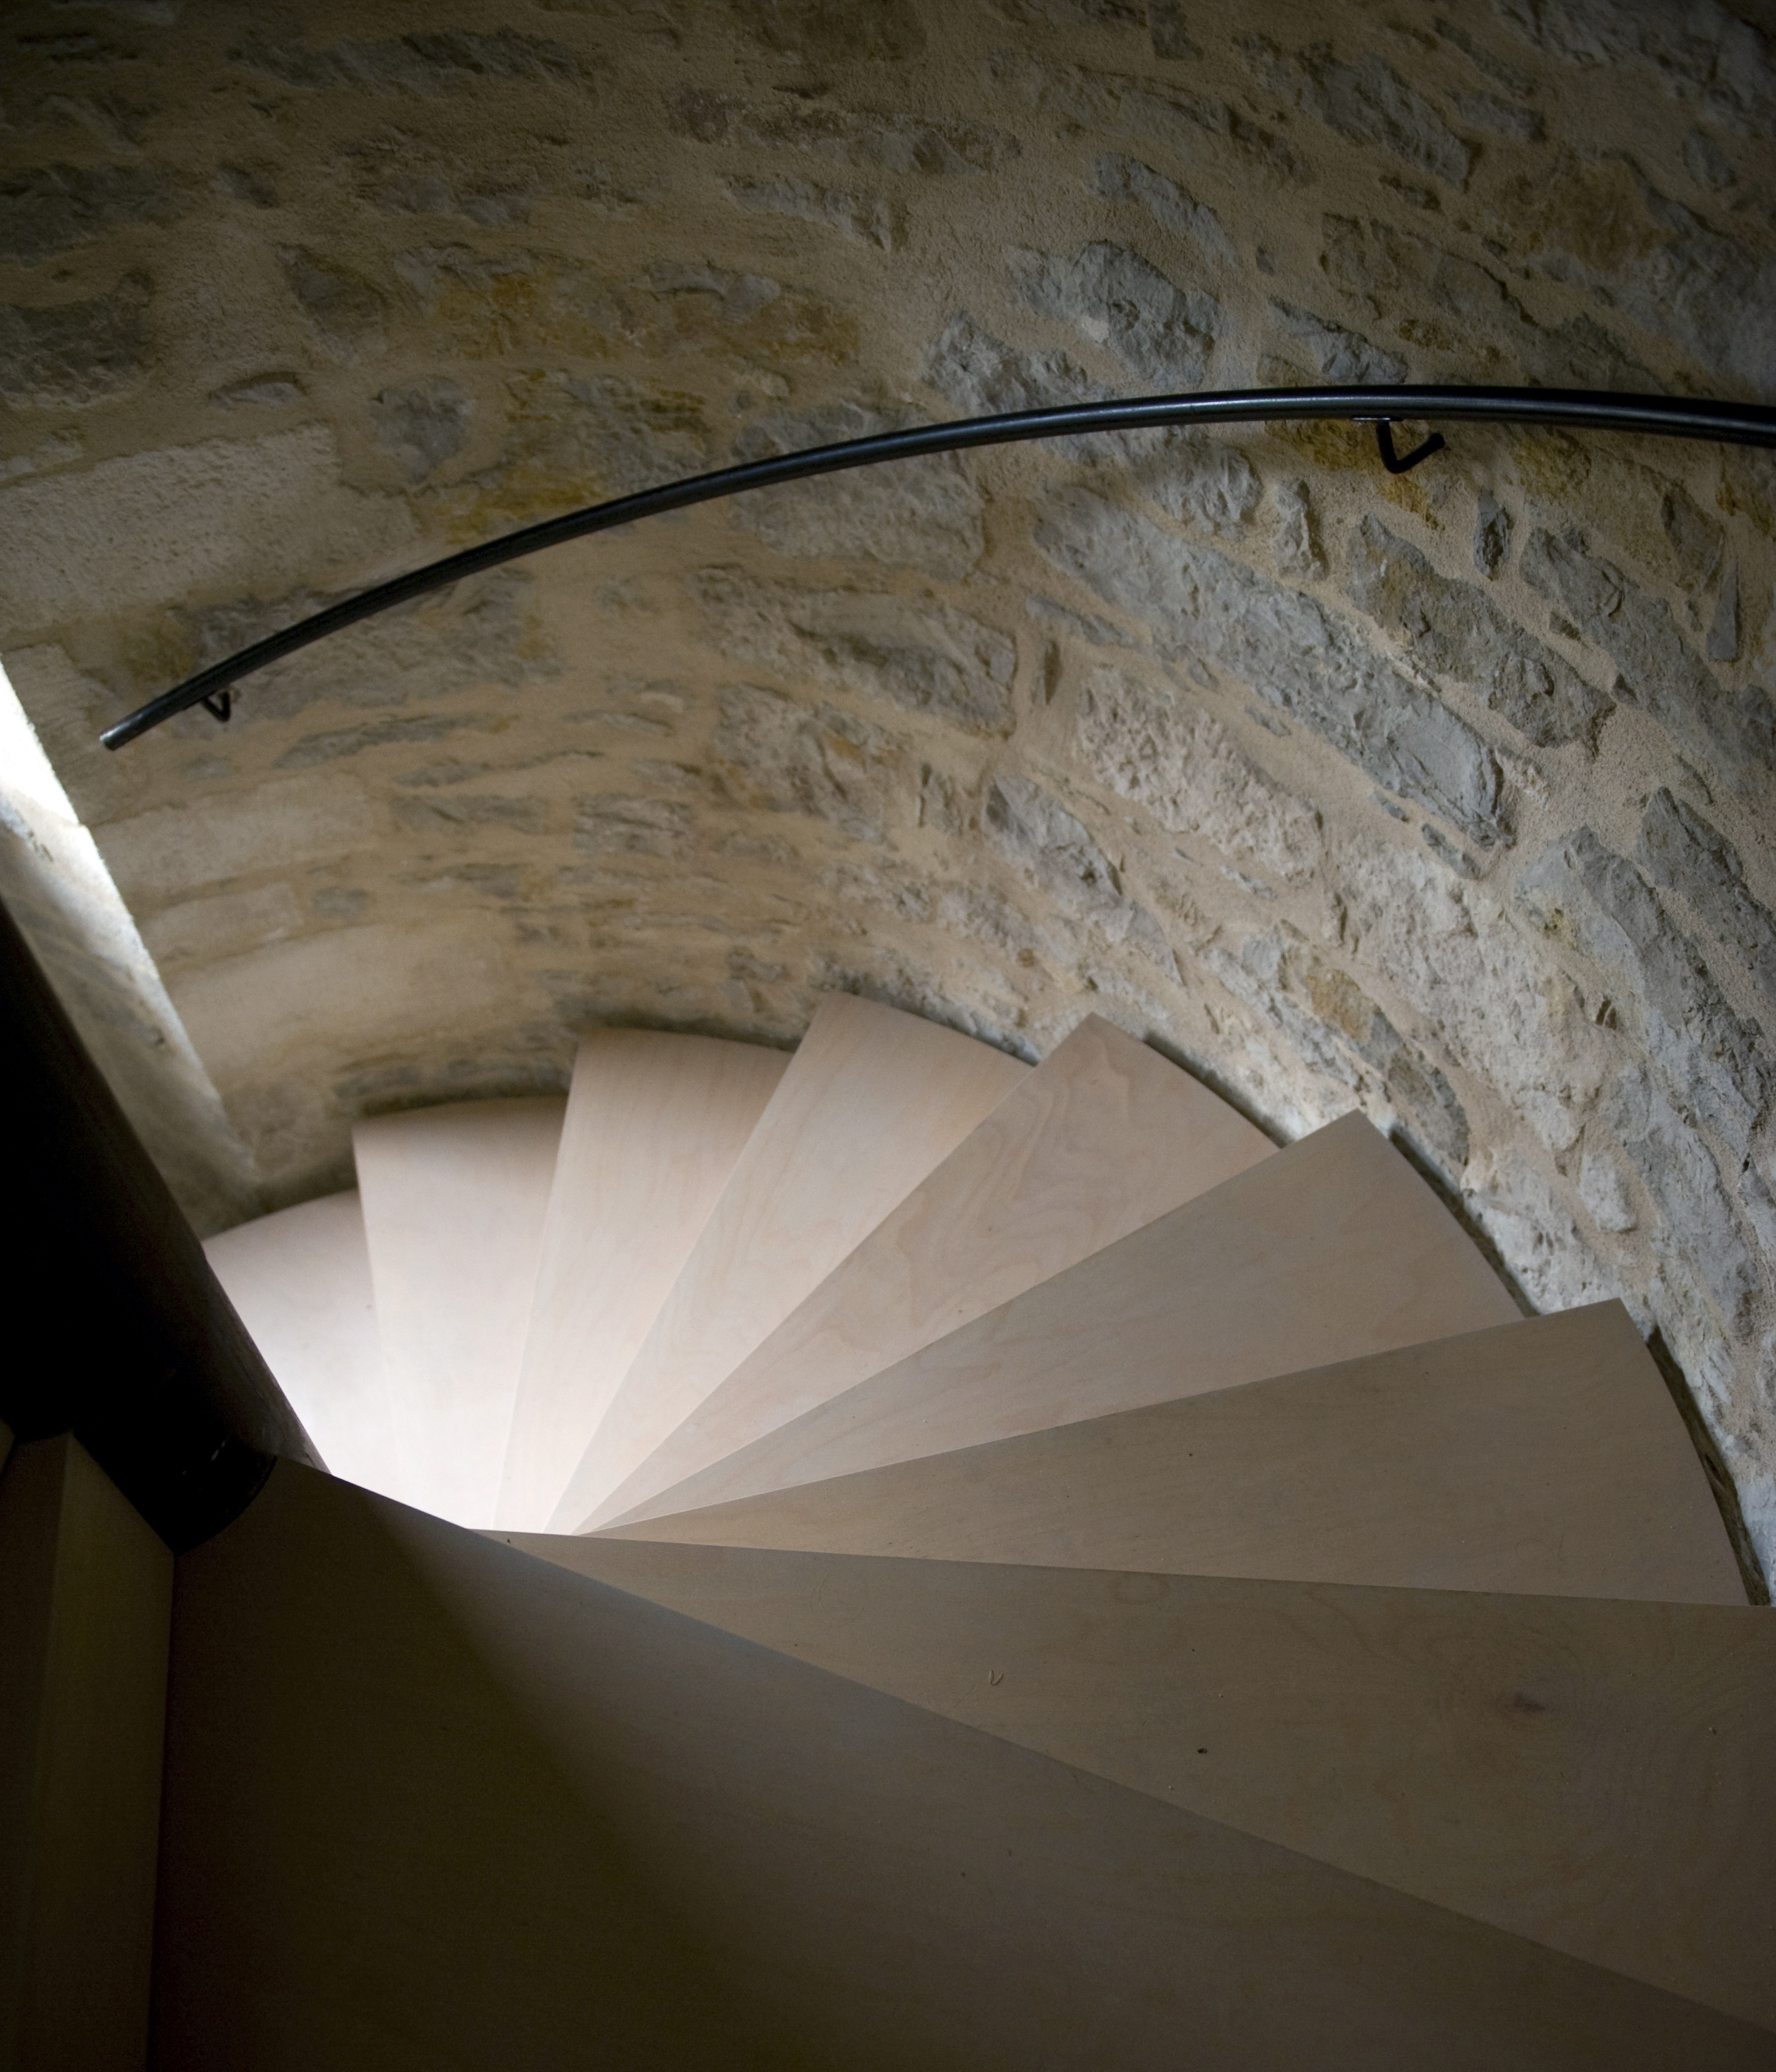 The spiral staircase inside the renovated medieval tower of Pamela and Richard Marshall, in the small village of Montvalent, France, Nov. 25, 2014. The first 16 steps of the spiral staircase are original stone; the remainder are a steel replacement clad in beechwood. (Andrea Wyner/The New York Times)